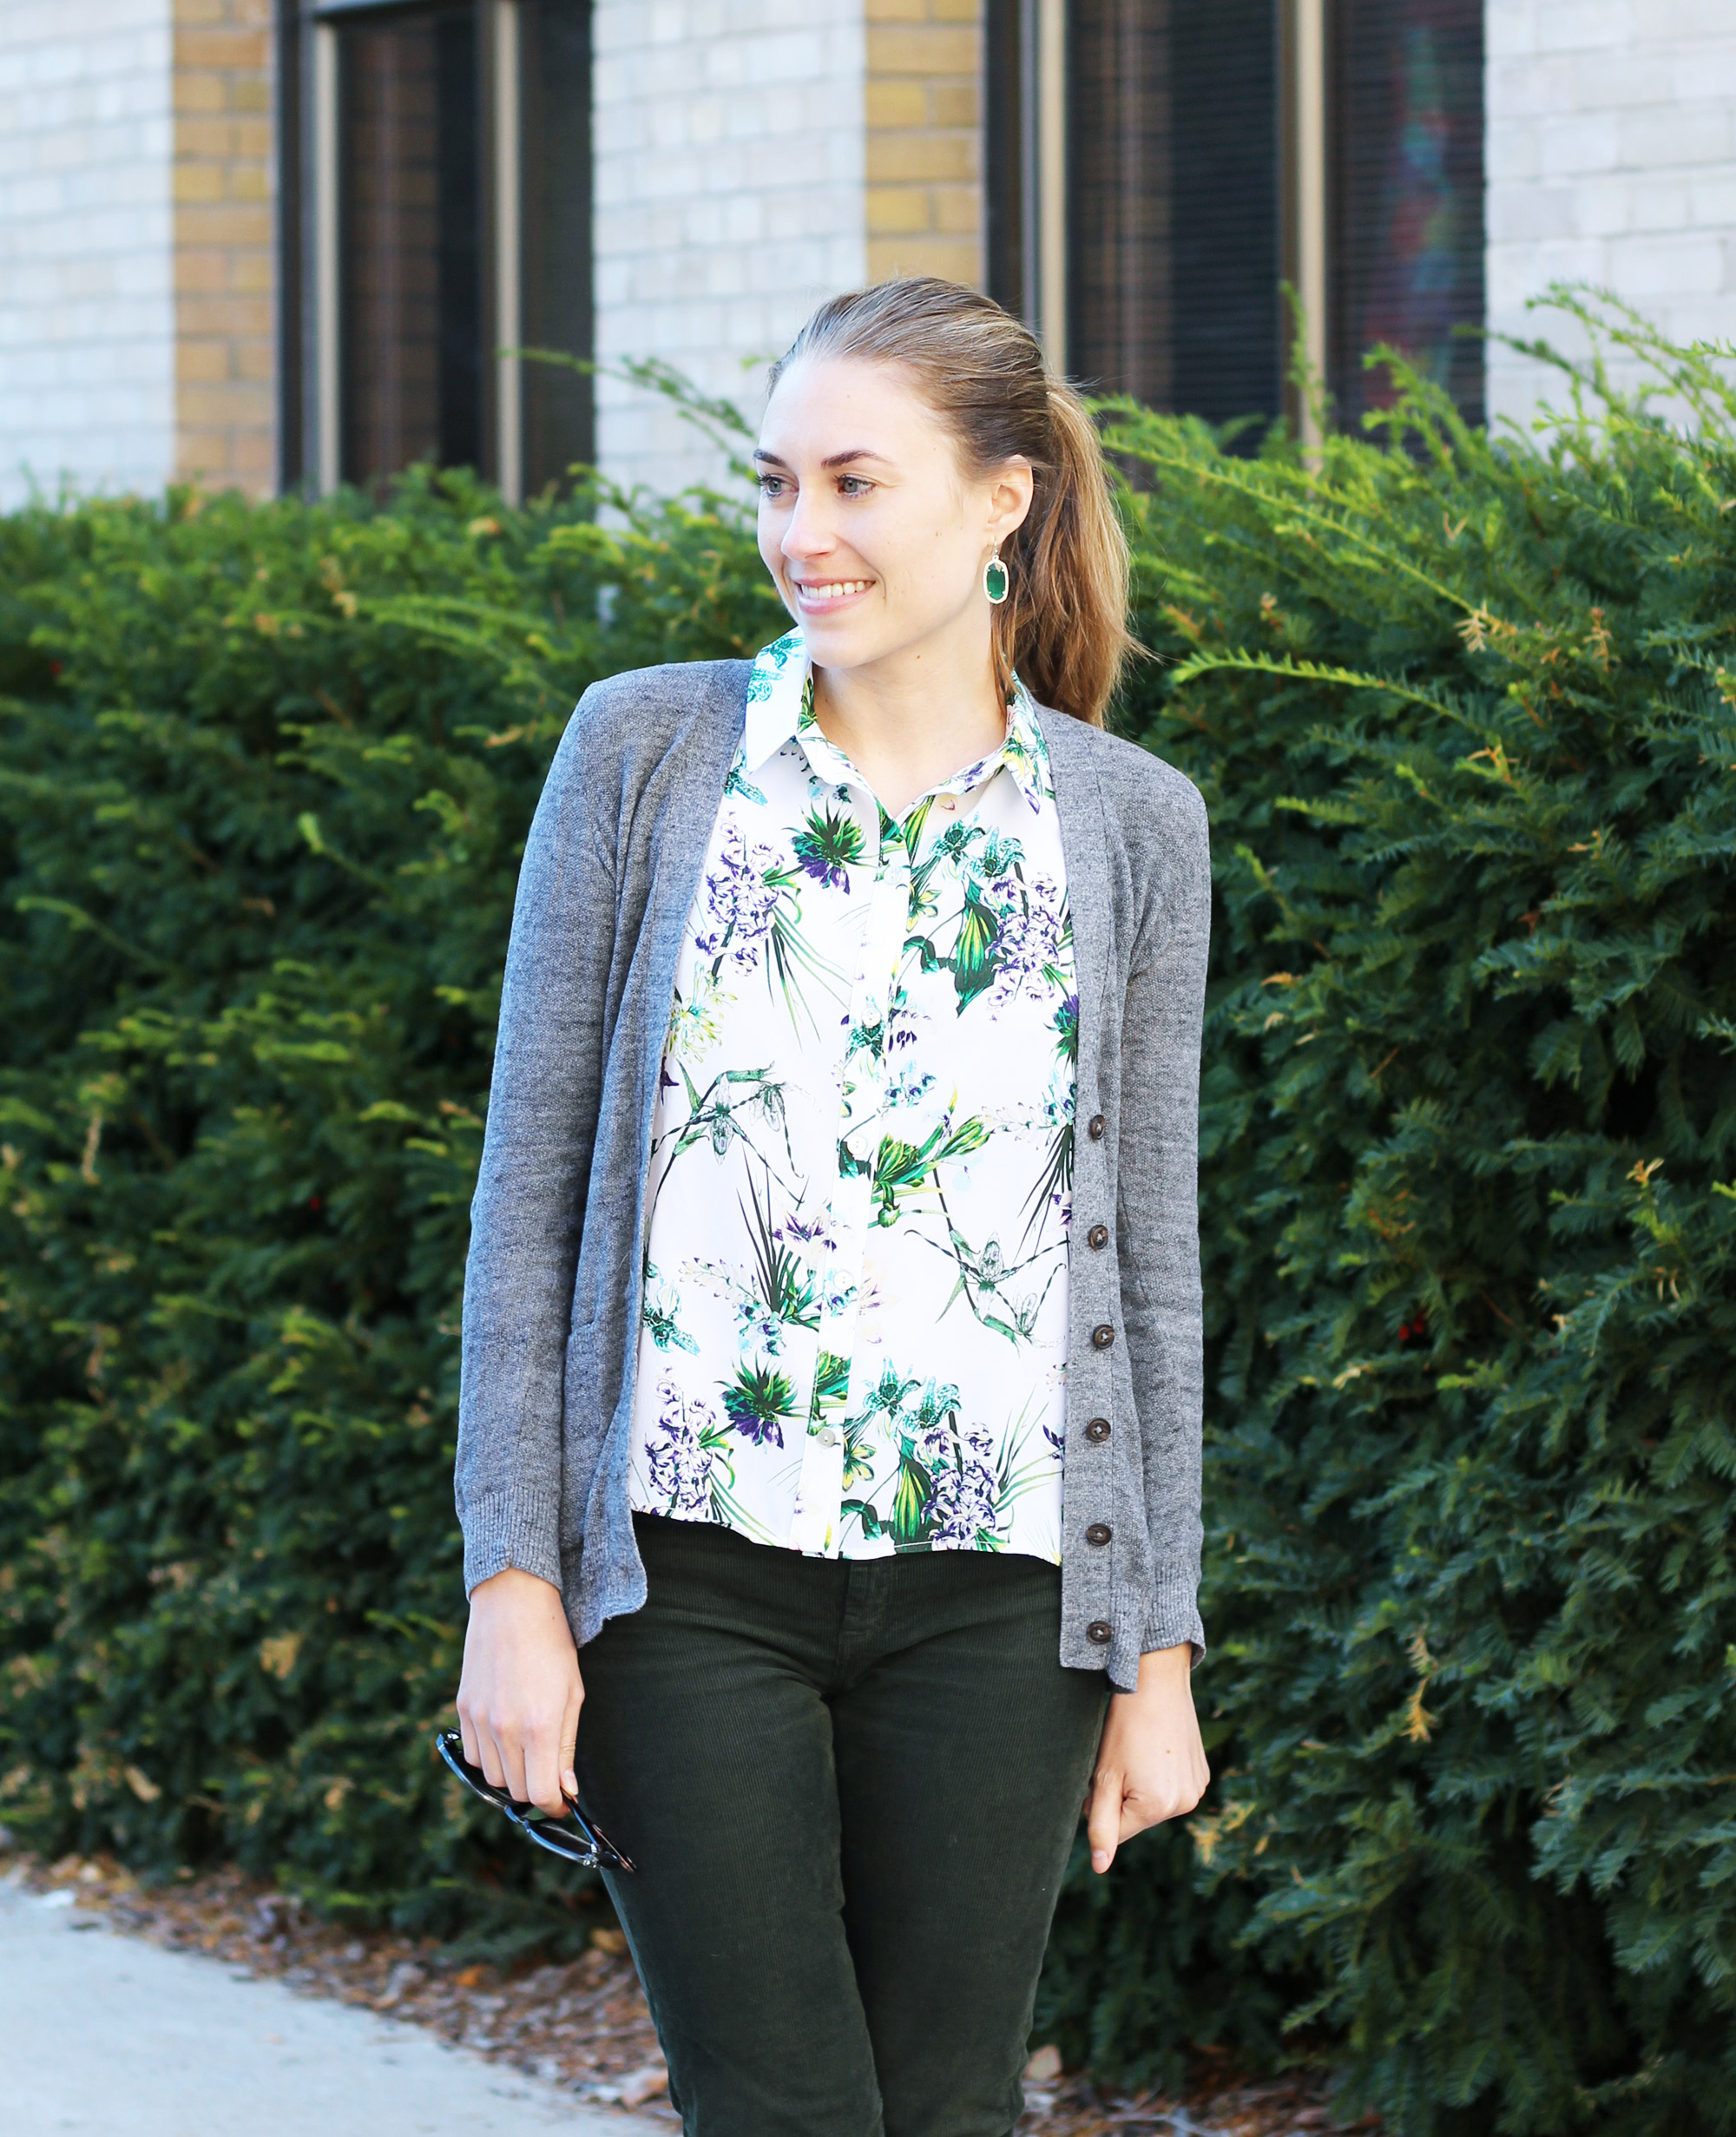 Amour Vert 'Riley' silk shirt in tropical with grey cardigan, green corduroy pants, Kendra Scott earrings — Cotton Cashmere Cat Hair